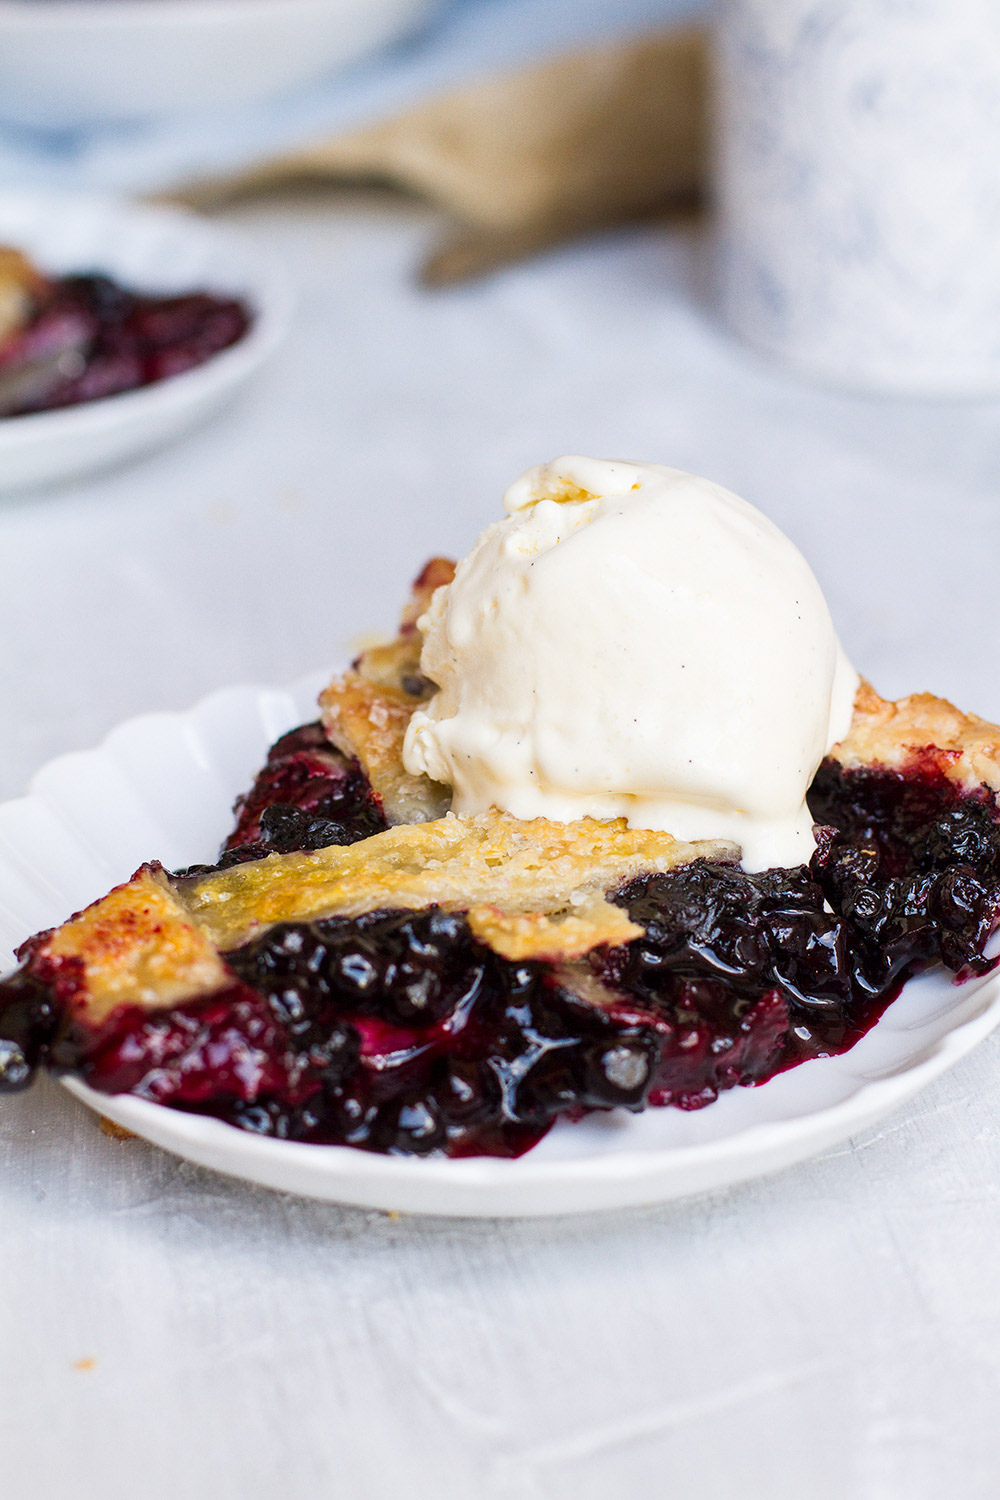 Slice of blueberry pie with slightly runny, uncooked blueberry filling.